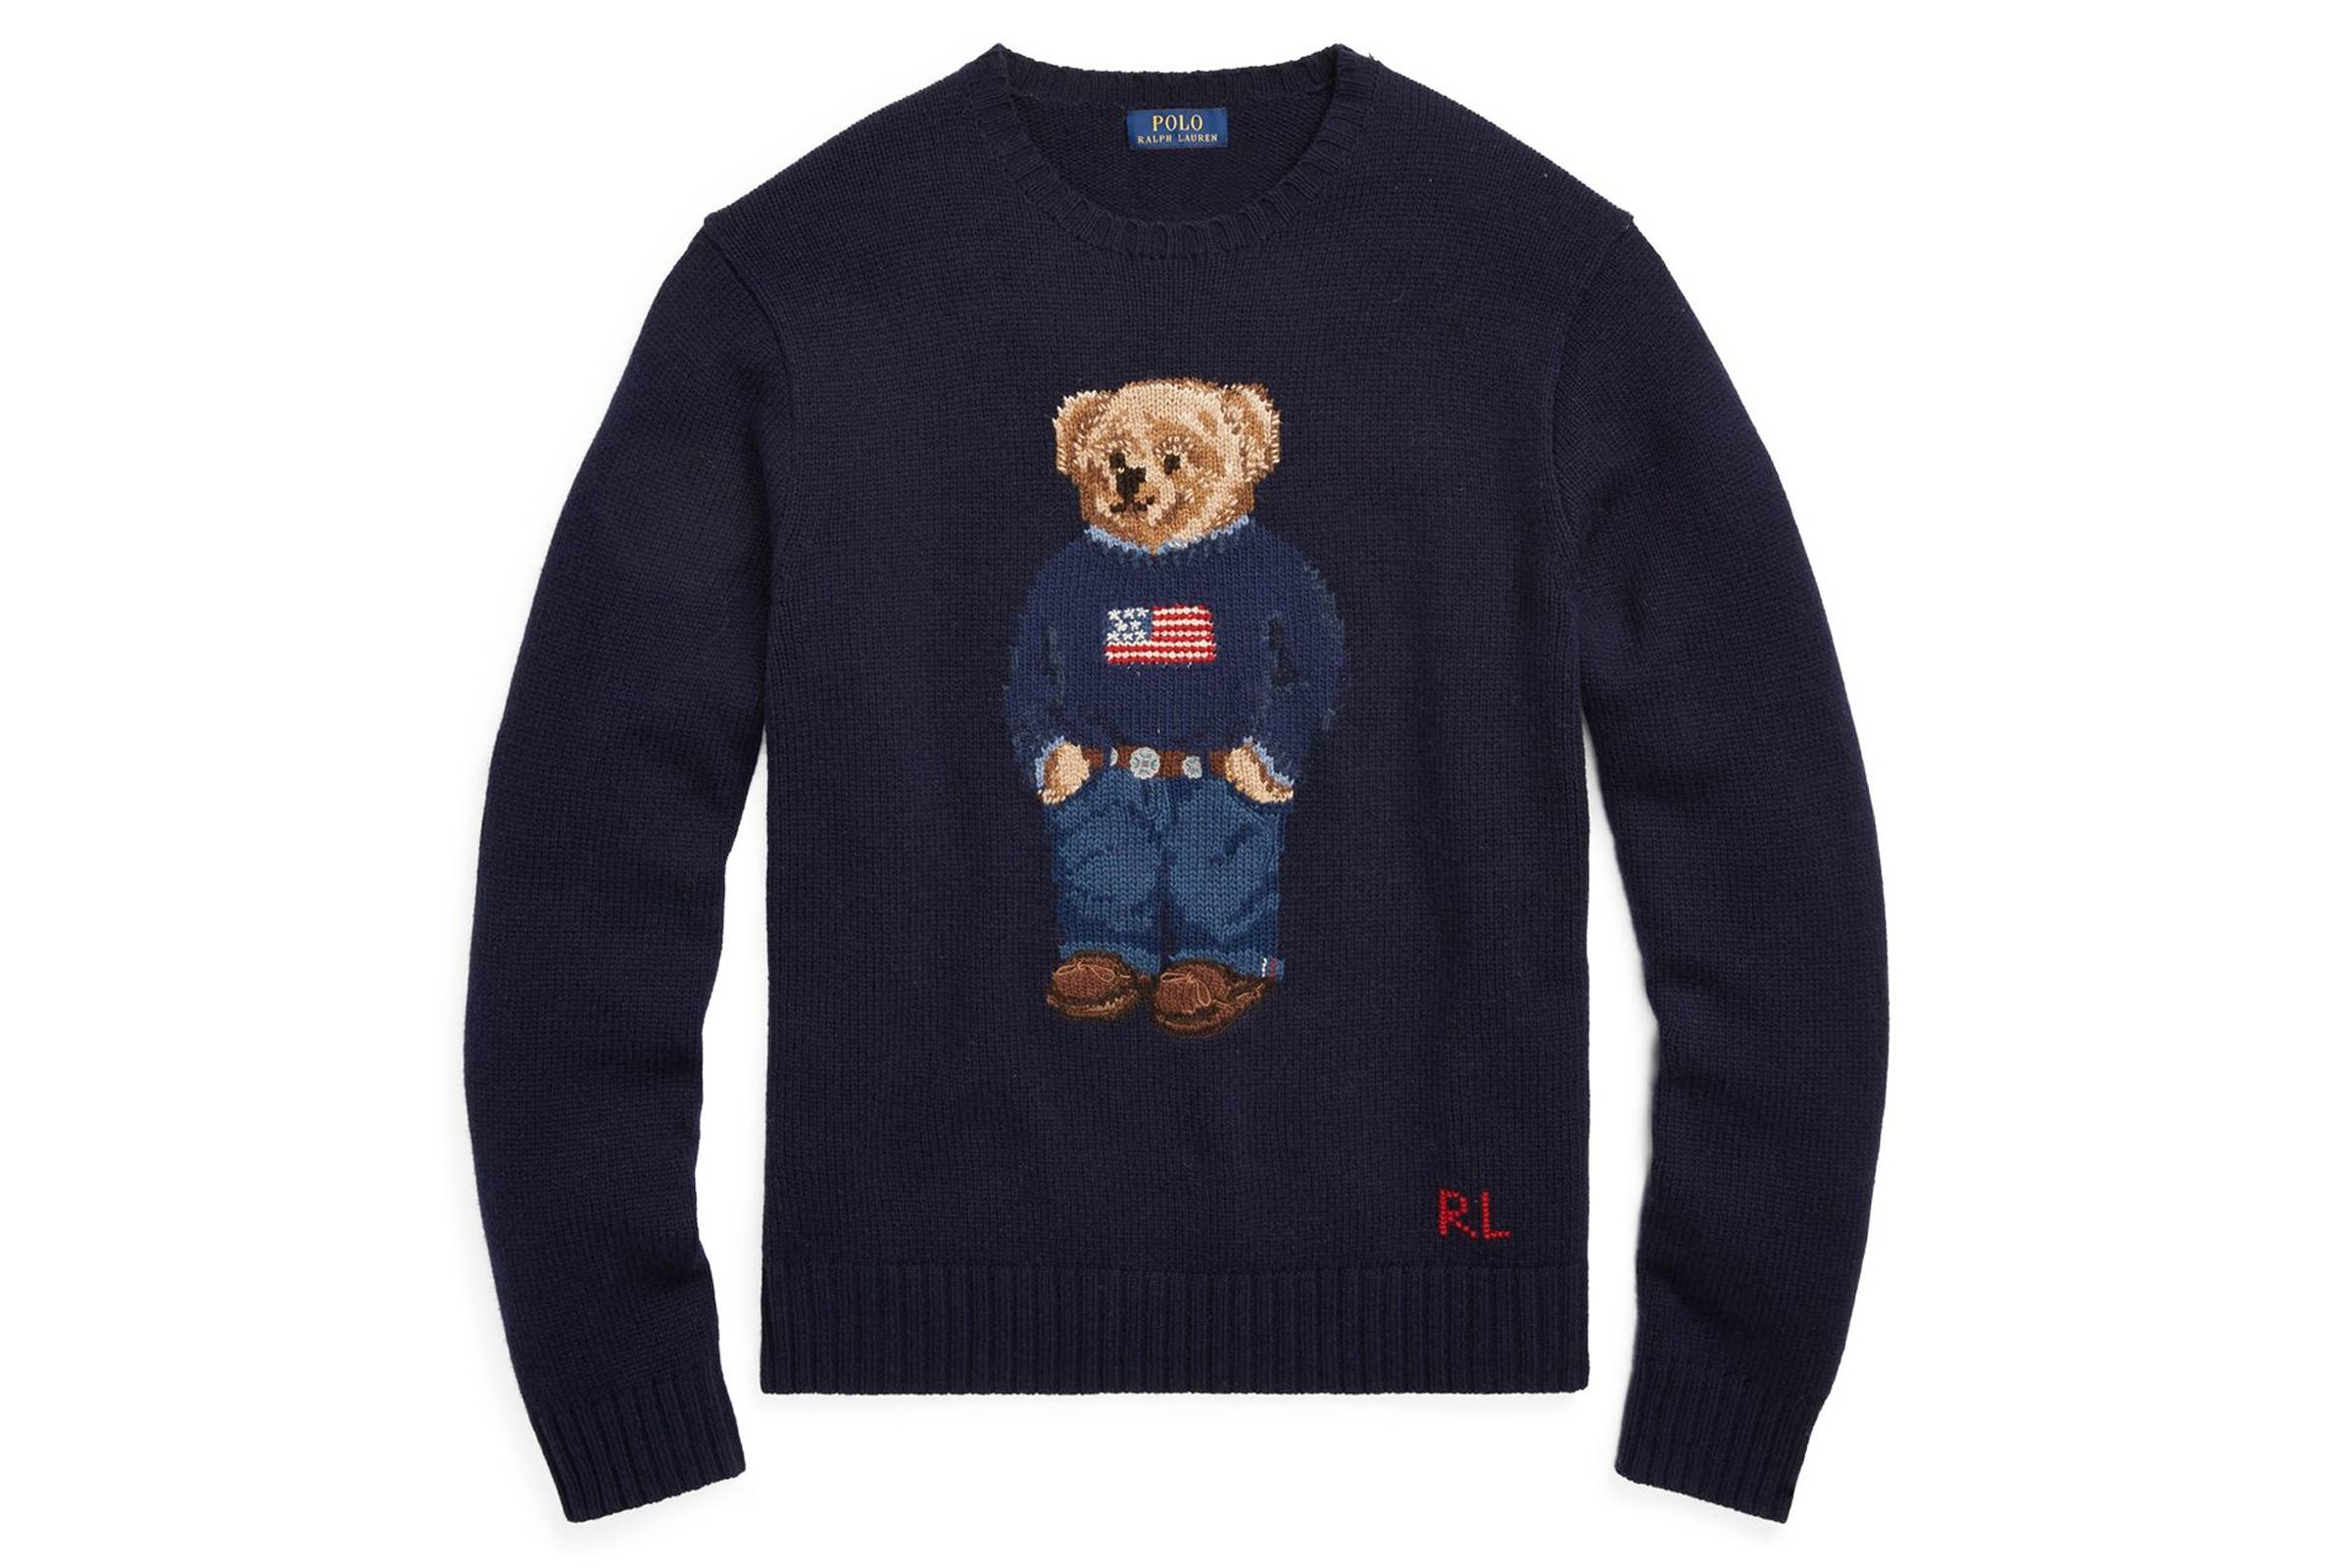 c15fdc7d6 The signature Ralph Lauren Polo bear started as an inside joke among Ralph  Lauren employees. Inspired by Jerry Lauren's Steiff teddy bear collection  (which ...